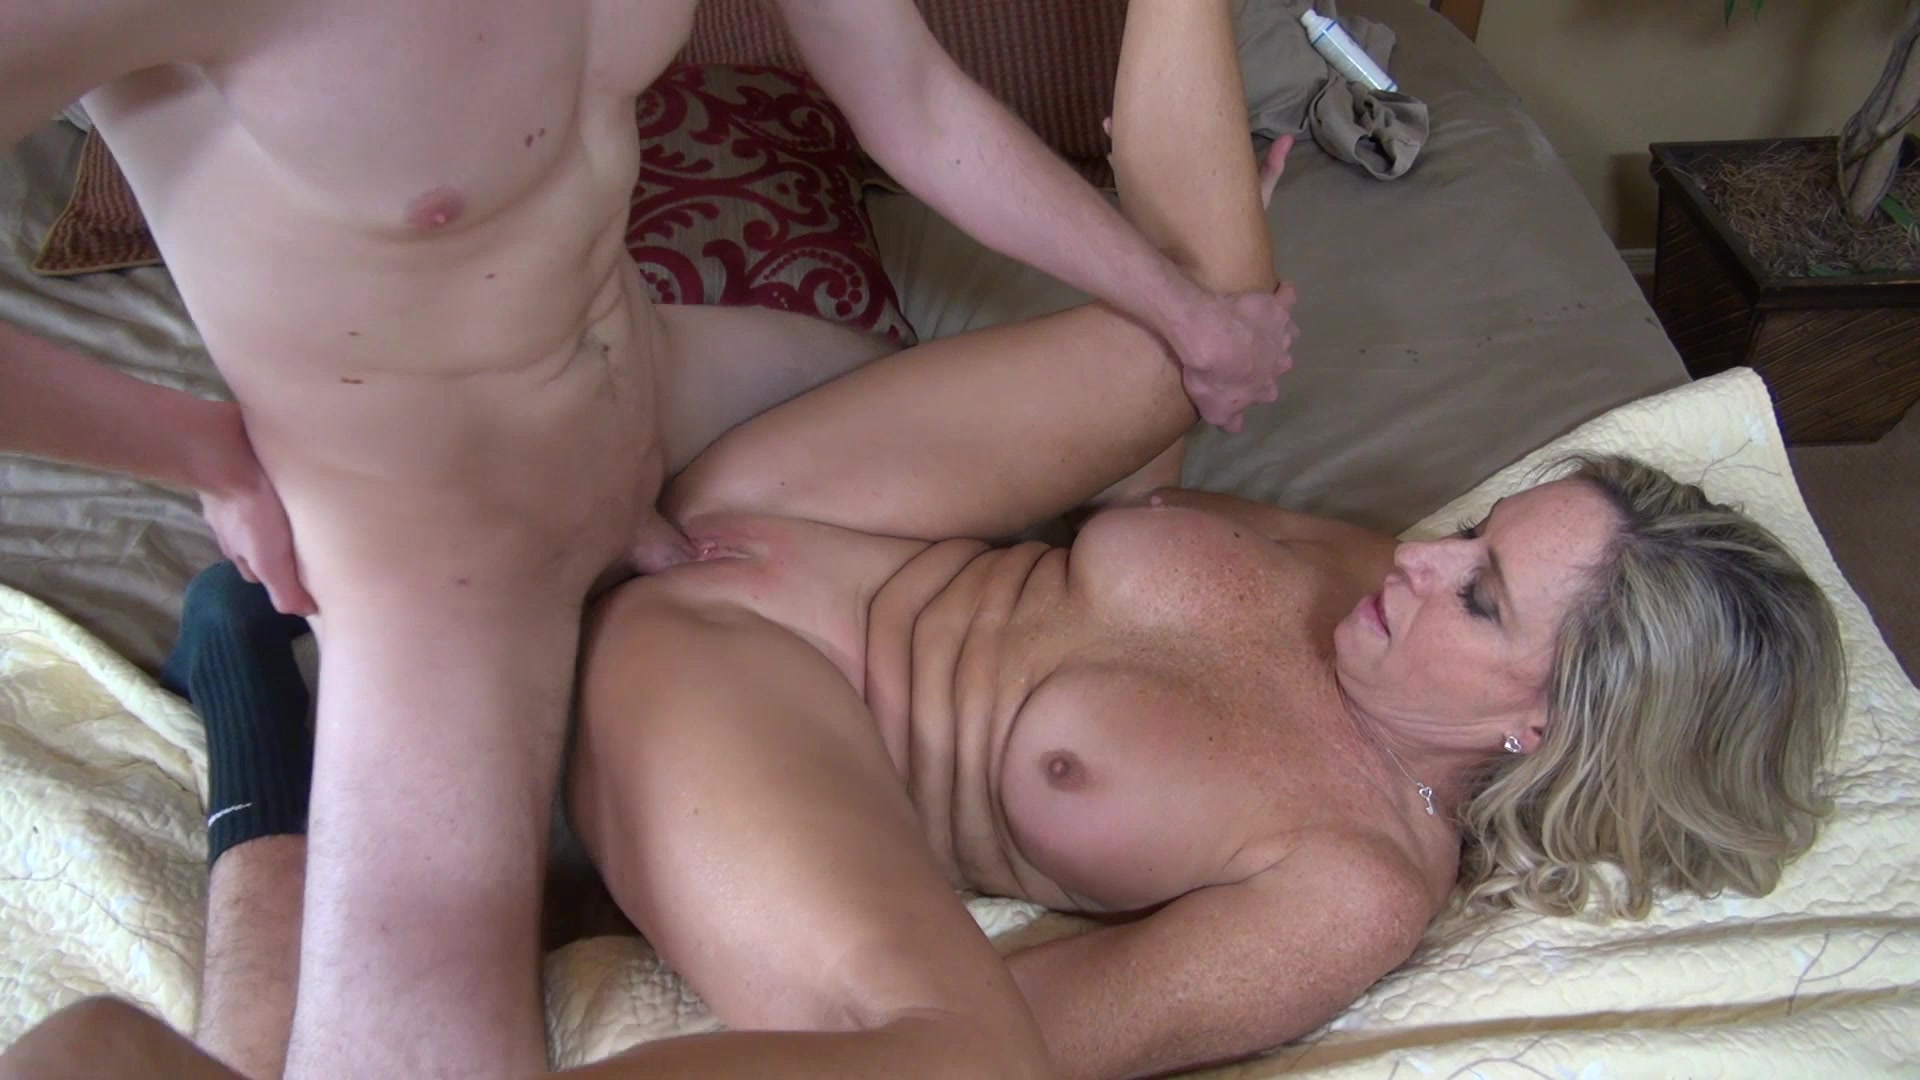 Poor amateur slut pinned down and fucked by a hog in this classic beastiality picture